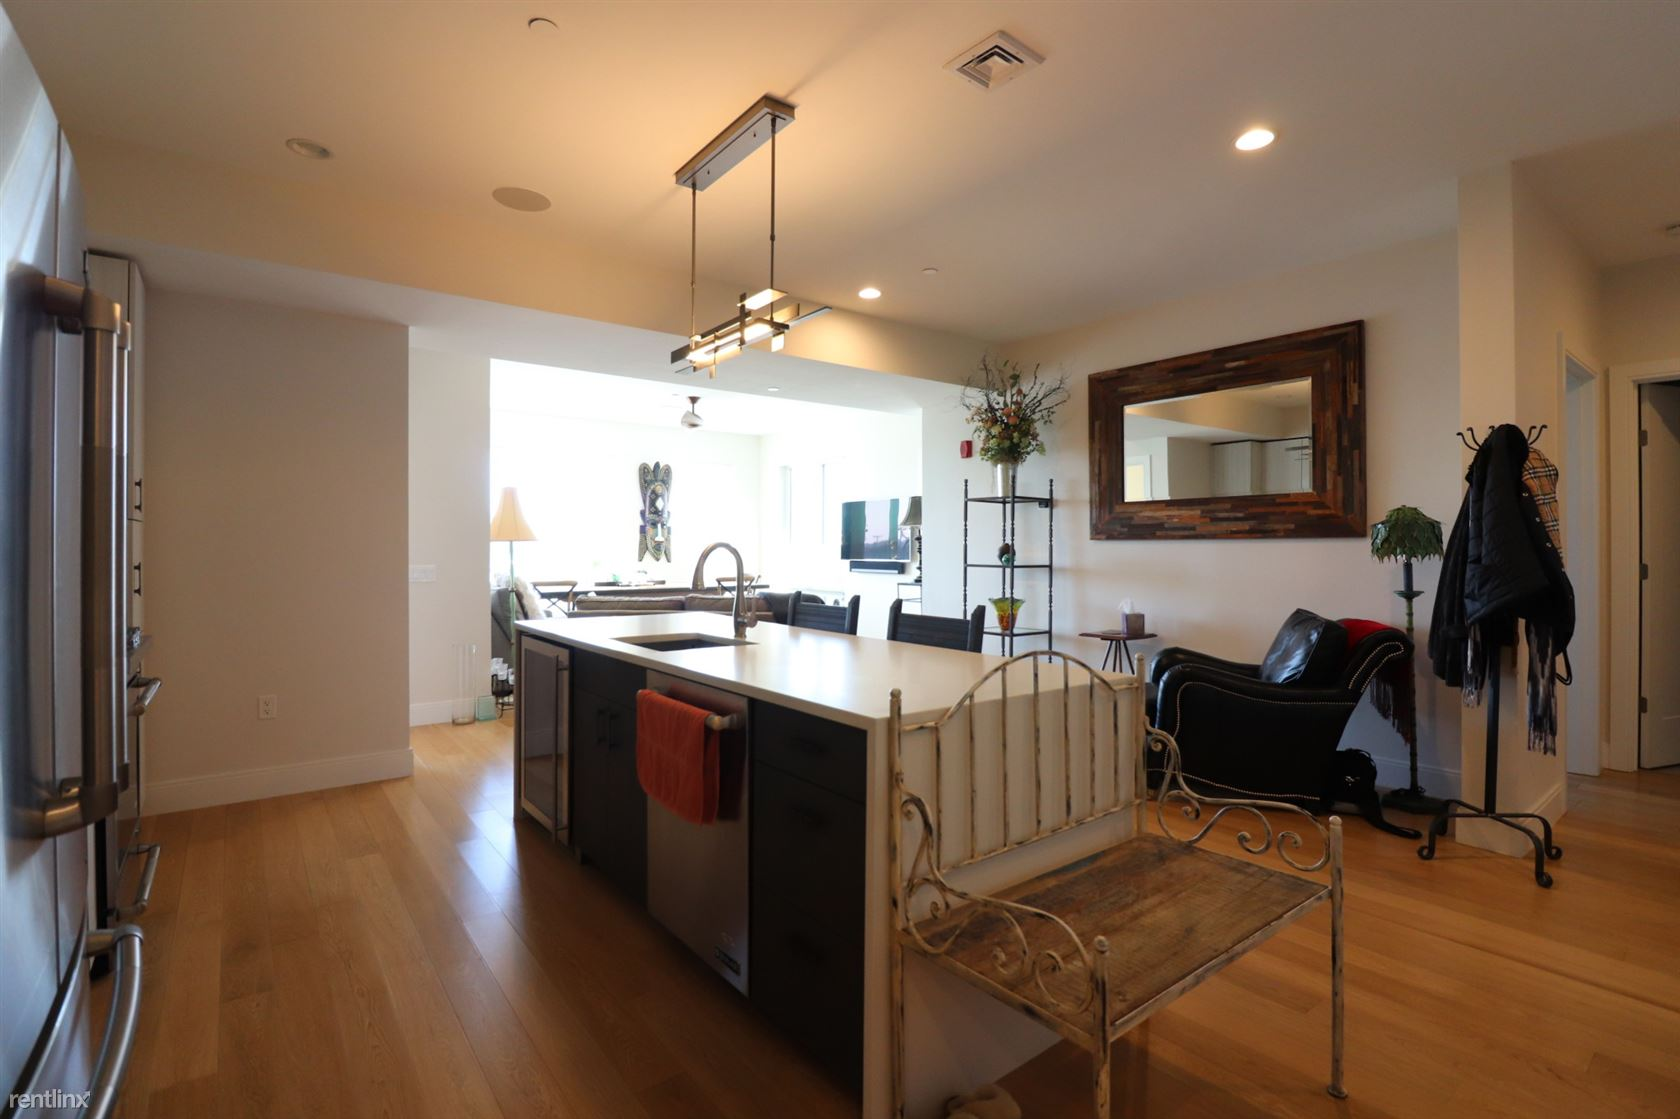 Condo for Rent in Boston